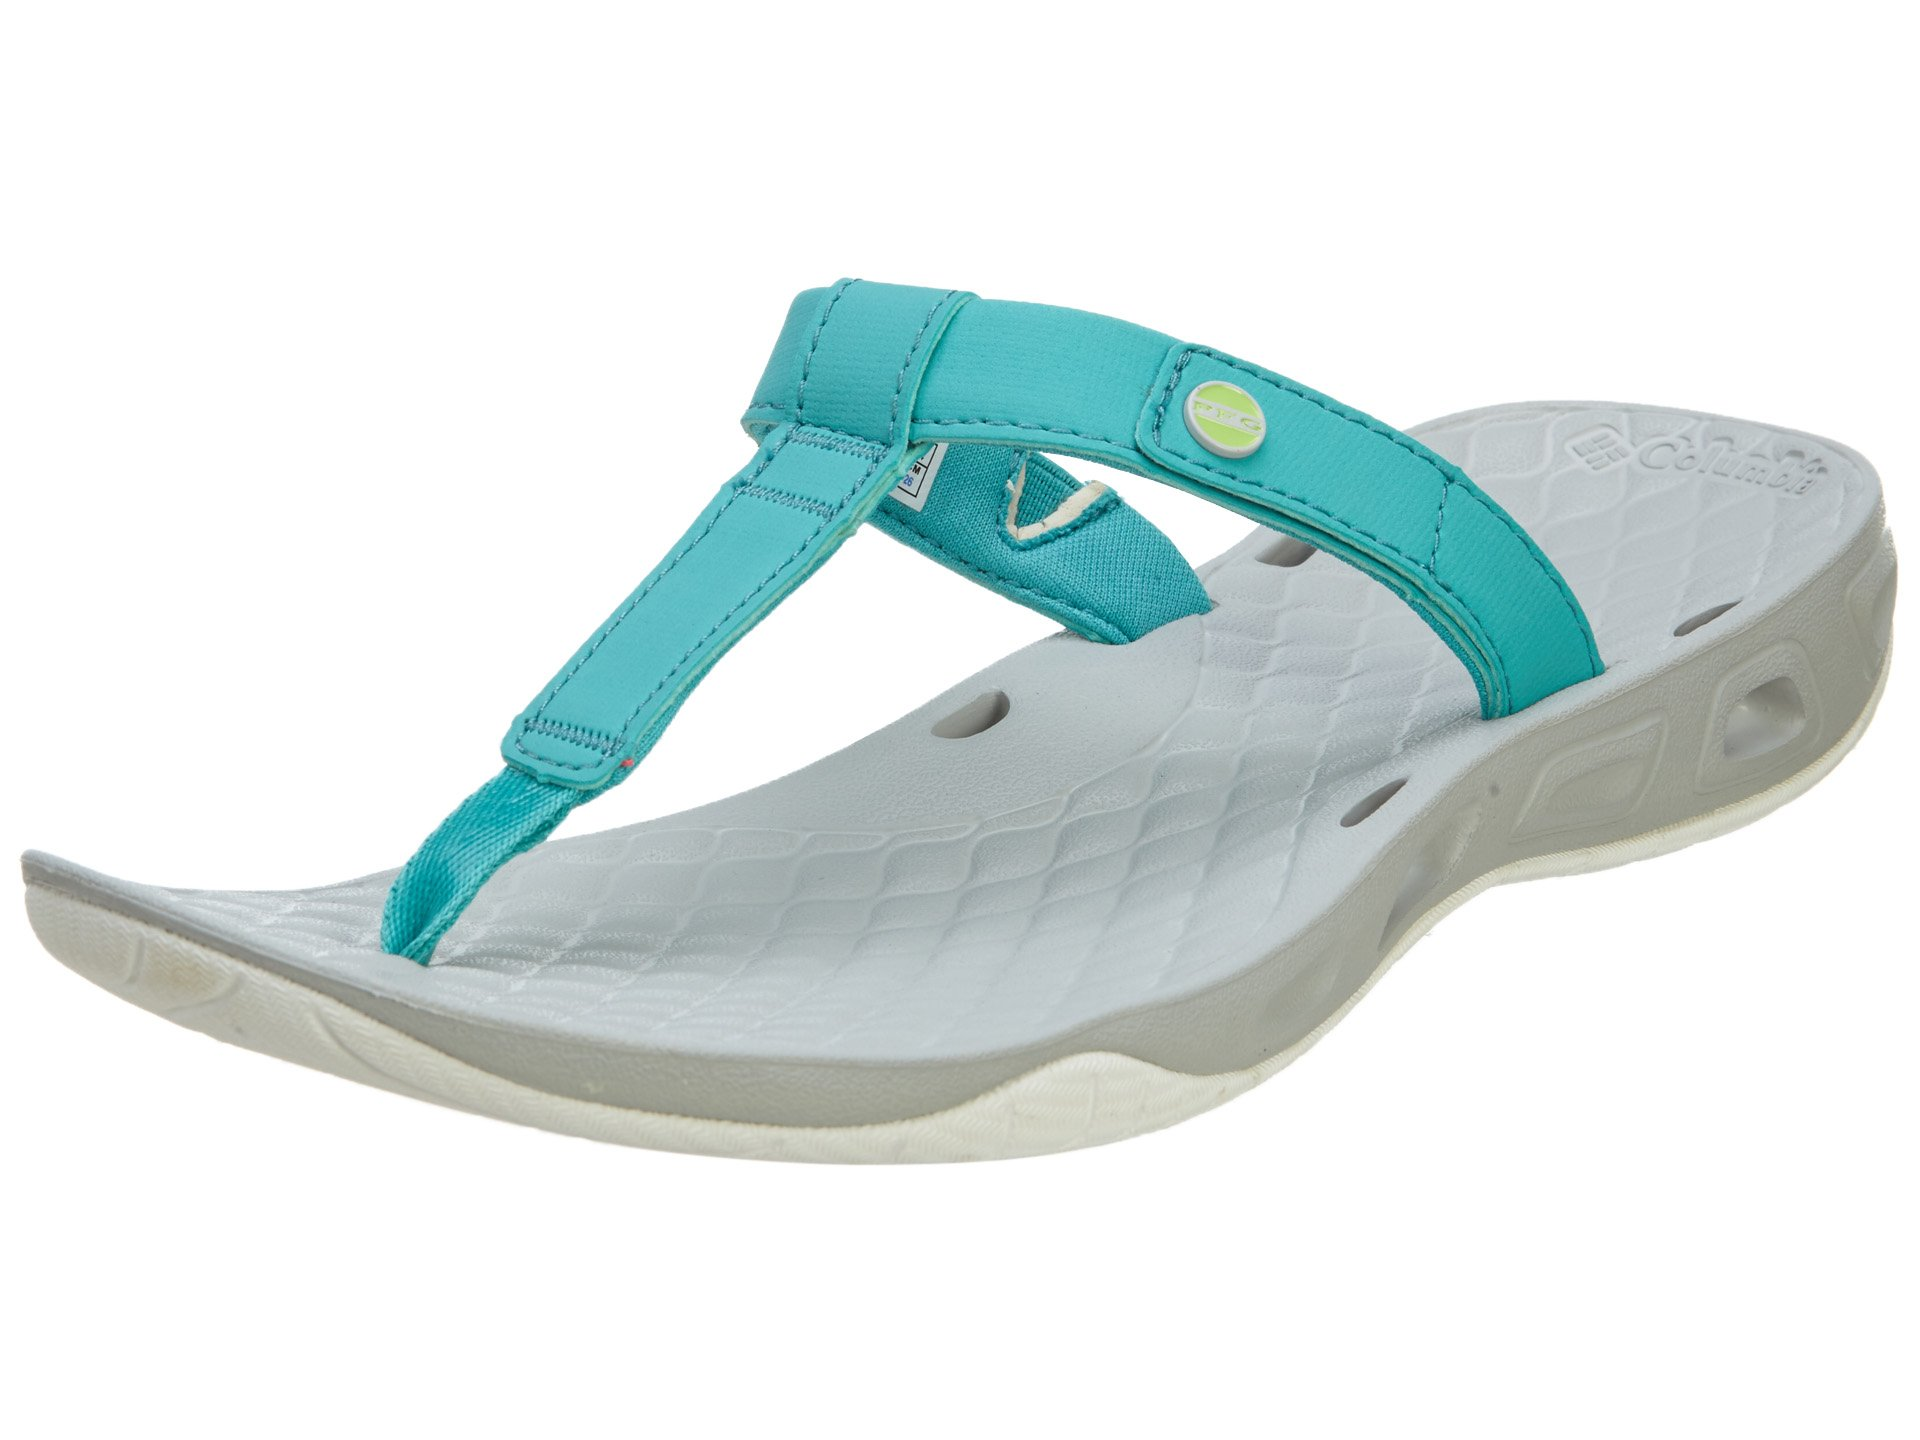 Columbia Sunlight Vent Flip PFG Casual Sandals Womens Style: BL4468-354 Size: 8